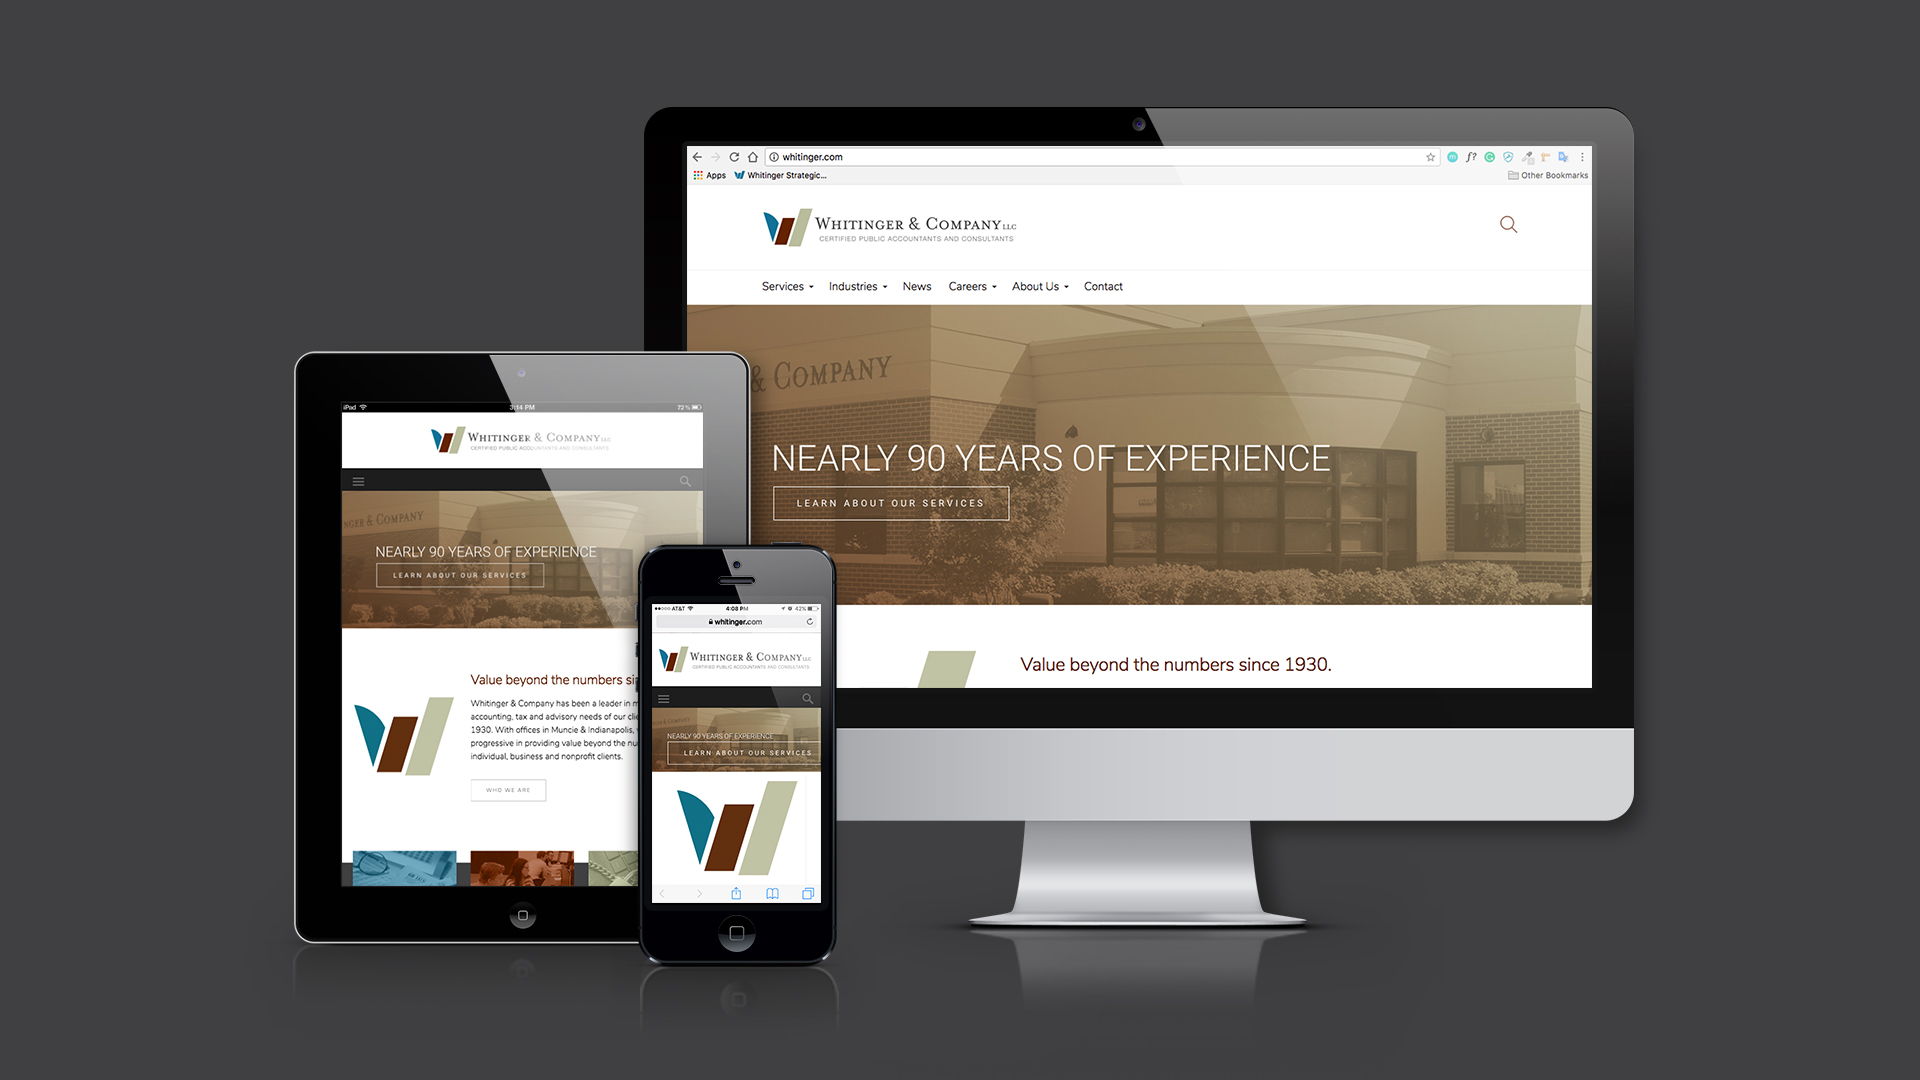 A responsive view of the Whitinger & Company website, depicting the mobile, tablet, and desktop versions.